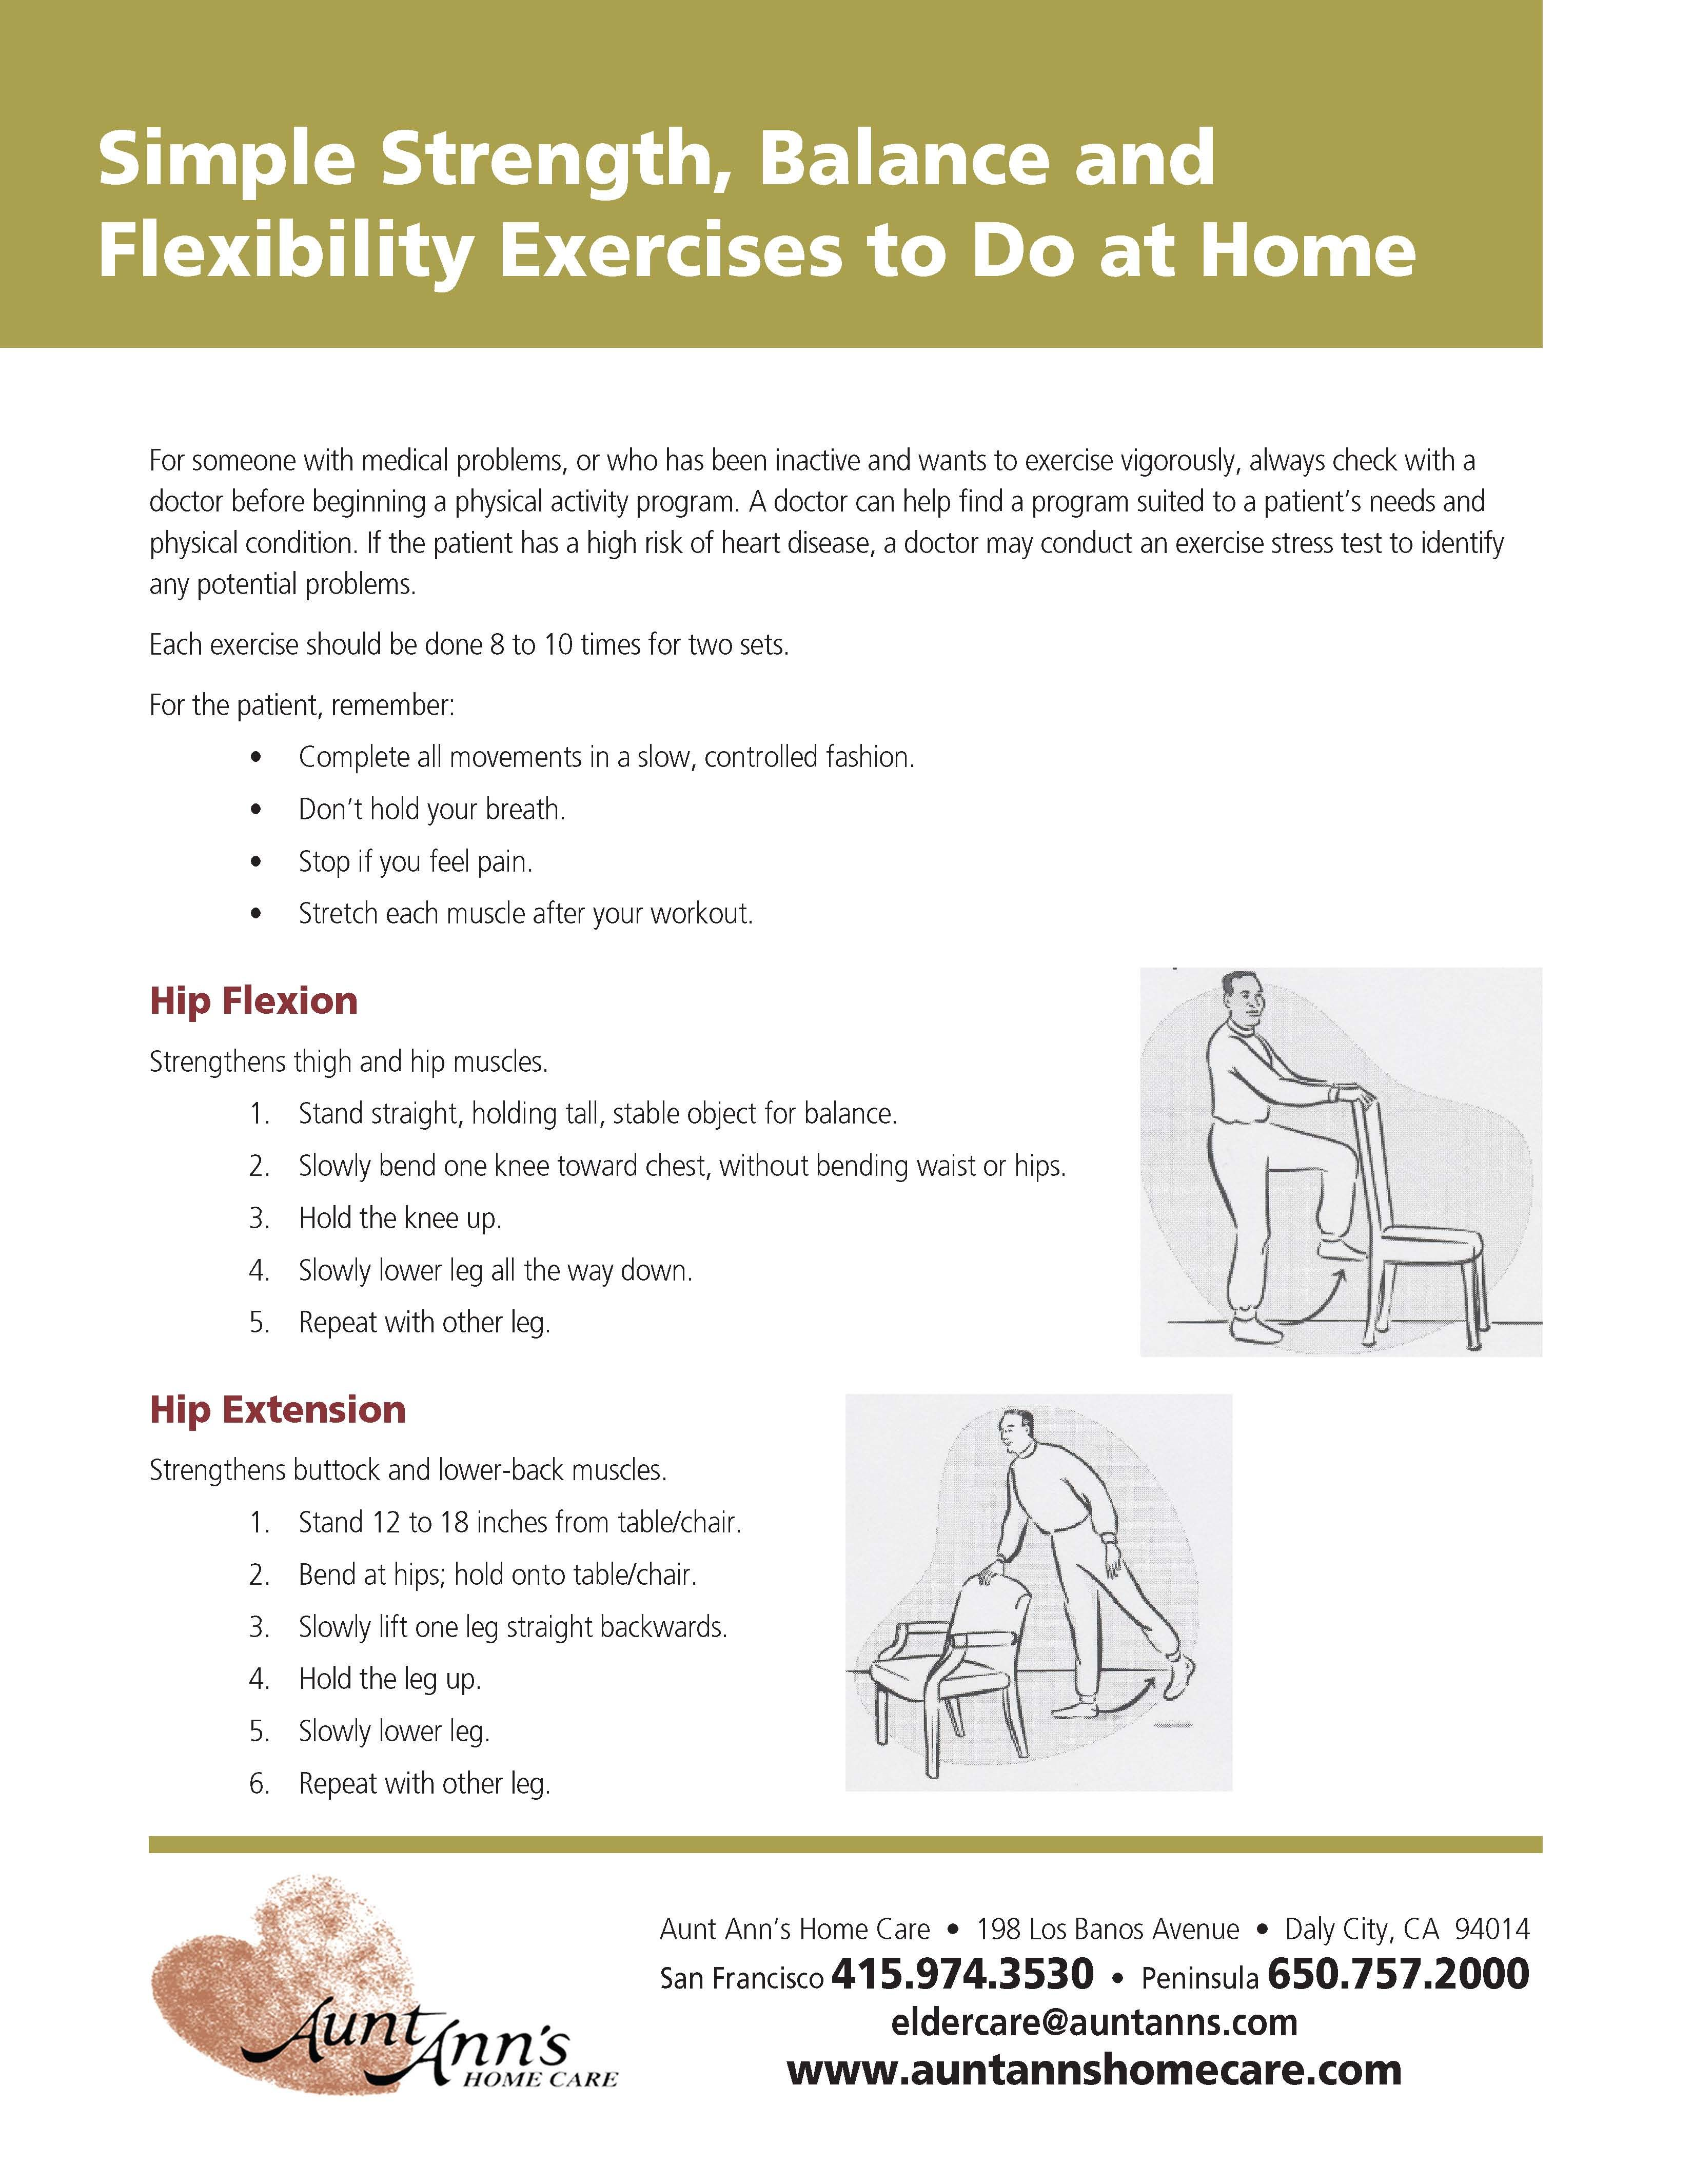 Simple Strength, Balance, and Flexibility Exercise to Do at Home ...